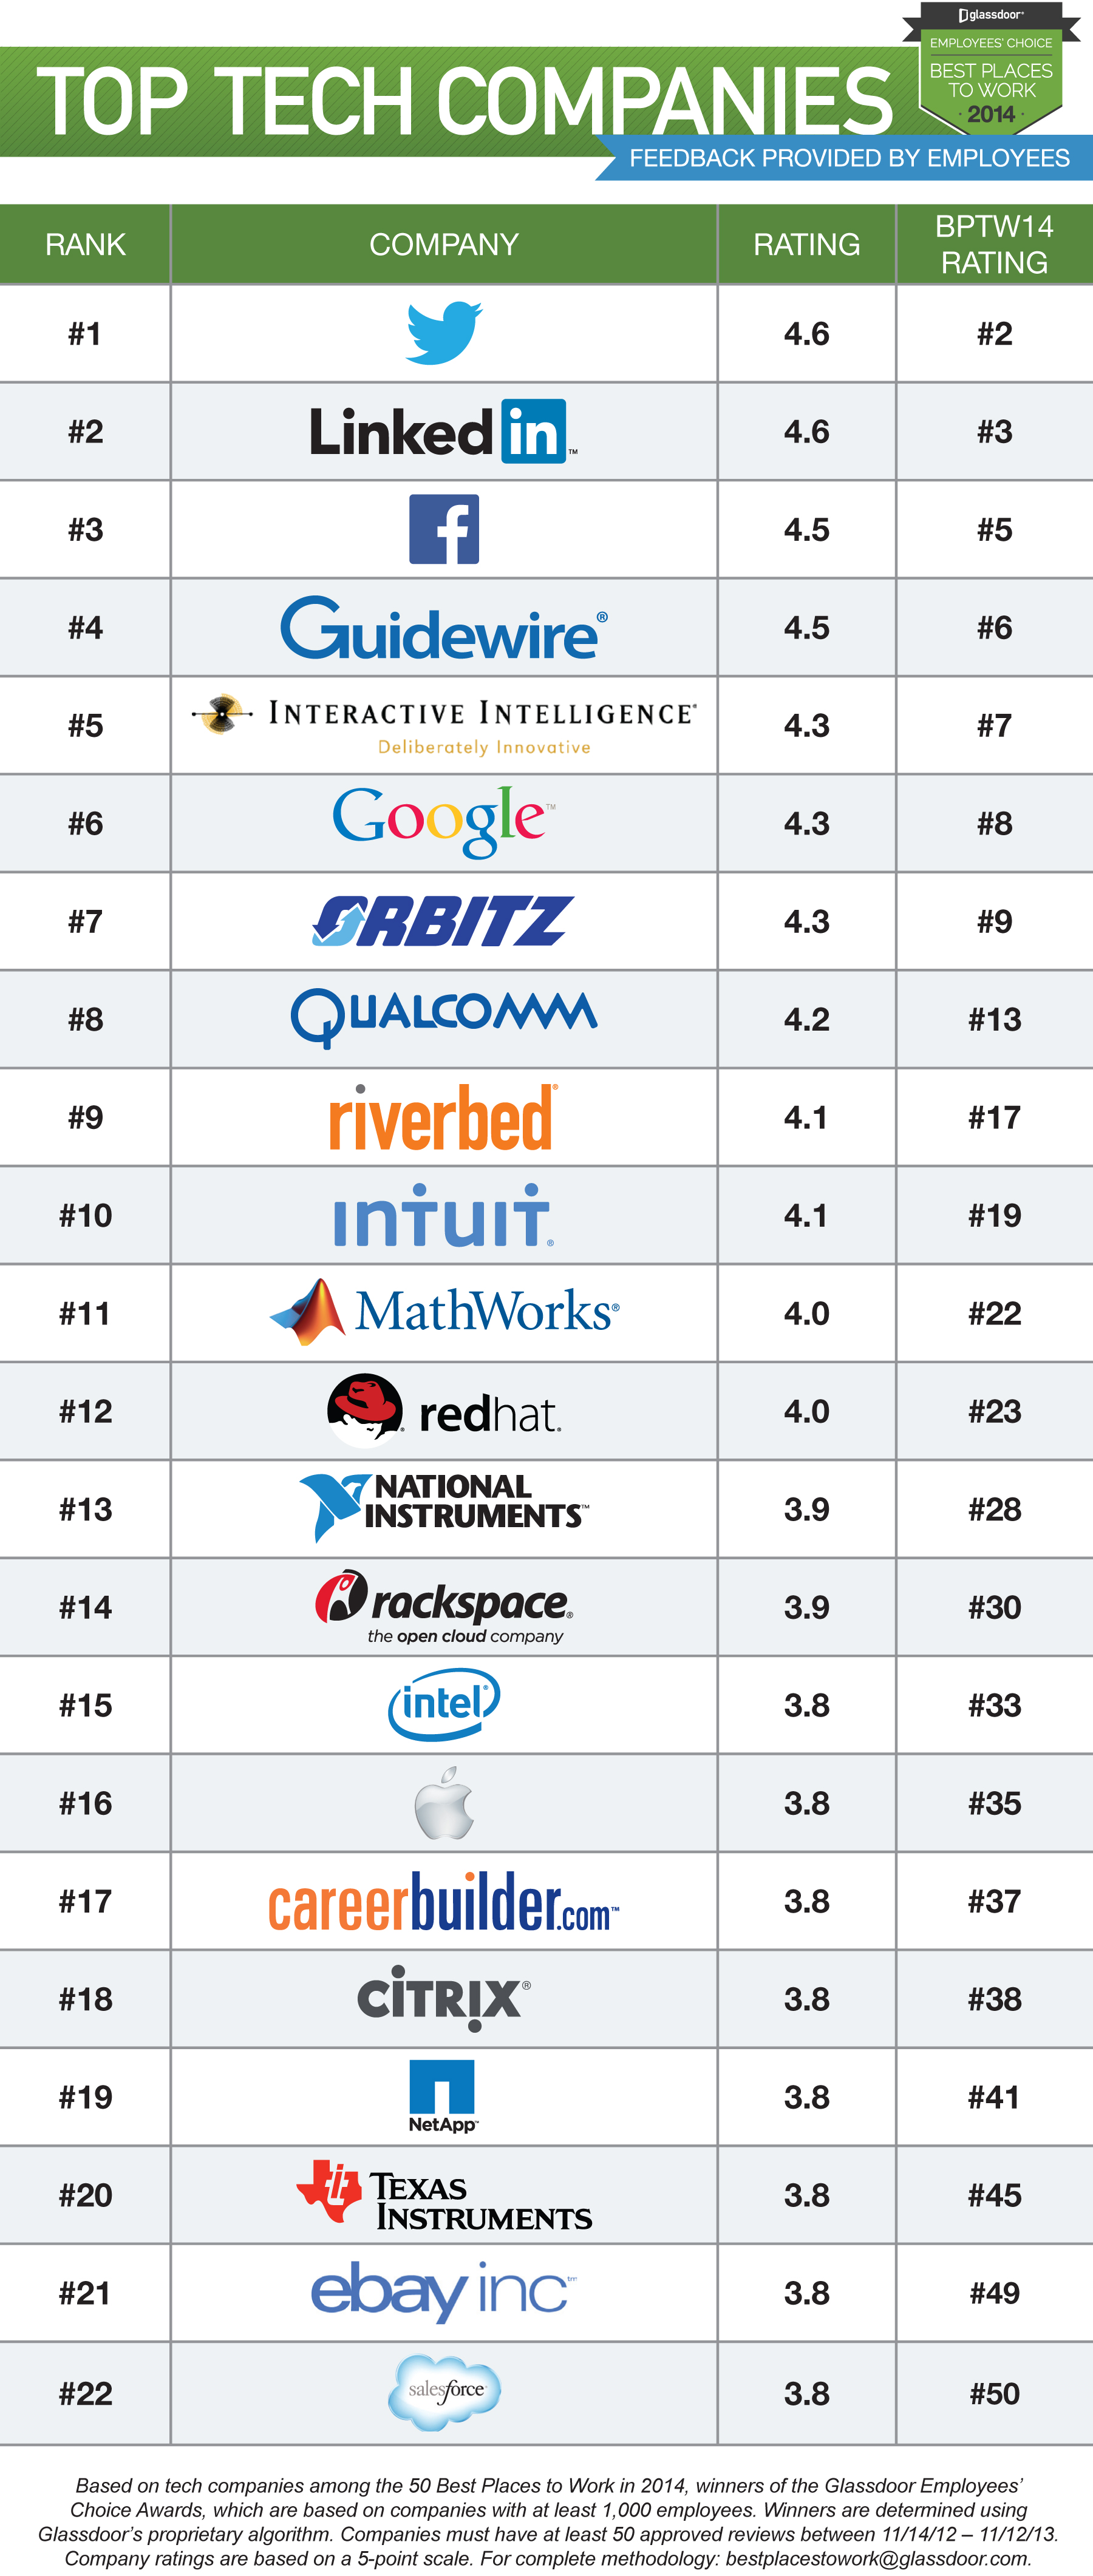 Glassdoor Top Tech Companies BPTW14 Glassdoor: Twitter dethrones Facebook as the best tech company to work for, ending three year streak